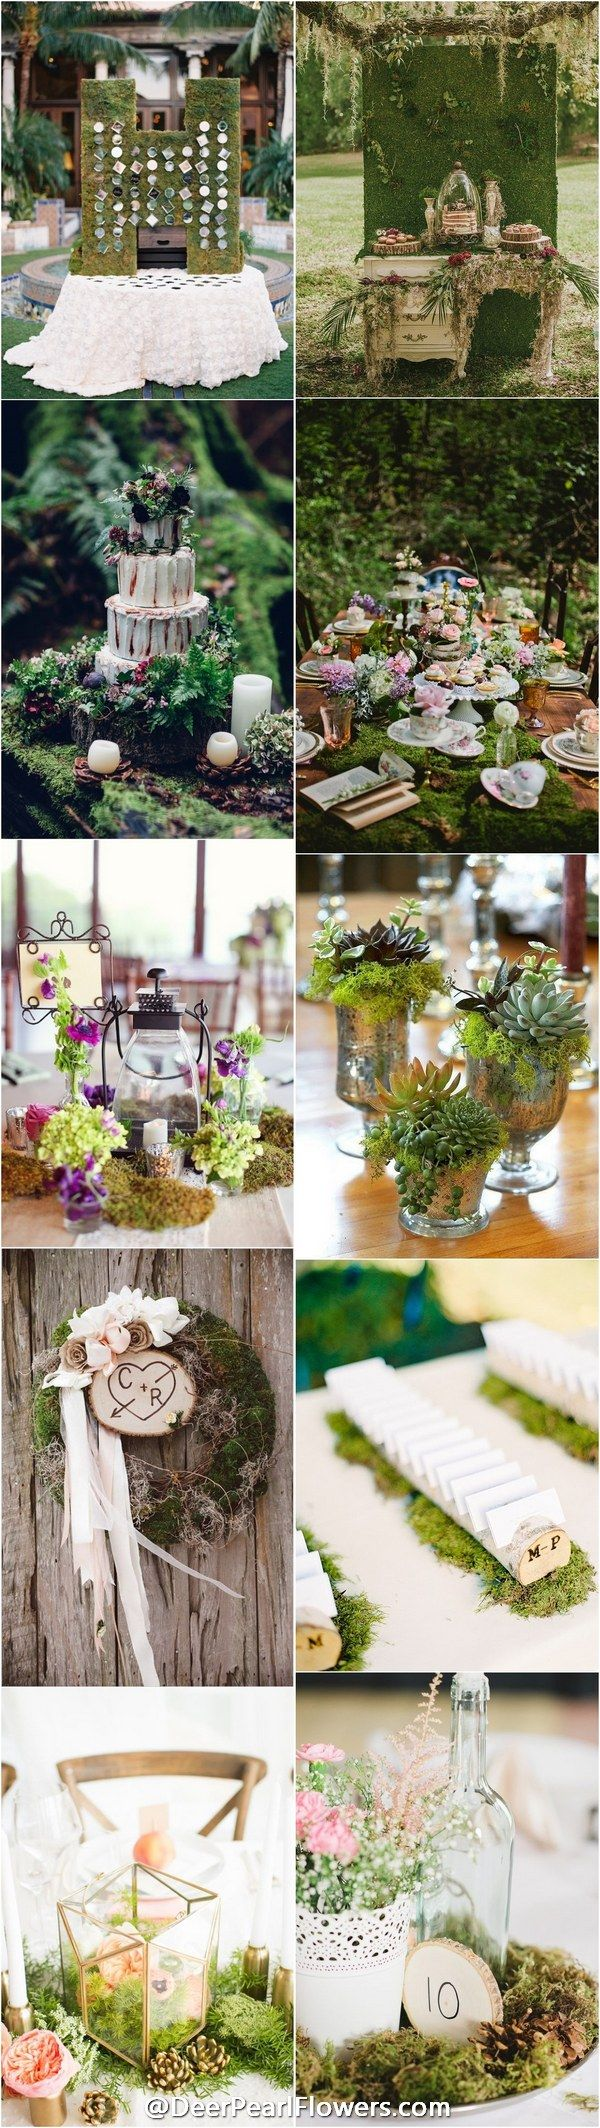 rustic greenery wedding color ideas - moss wedding ideas / http://www.deerpearlflowers.com/moss-decor-ideas-for-a-nature-wedding/